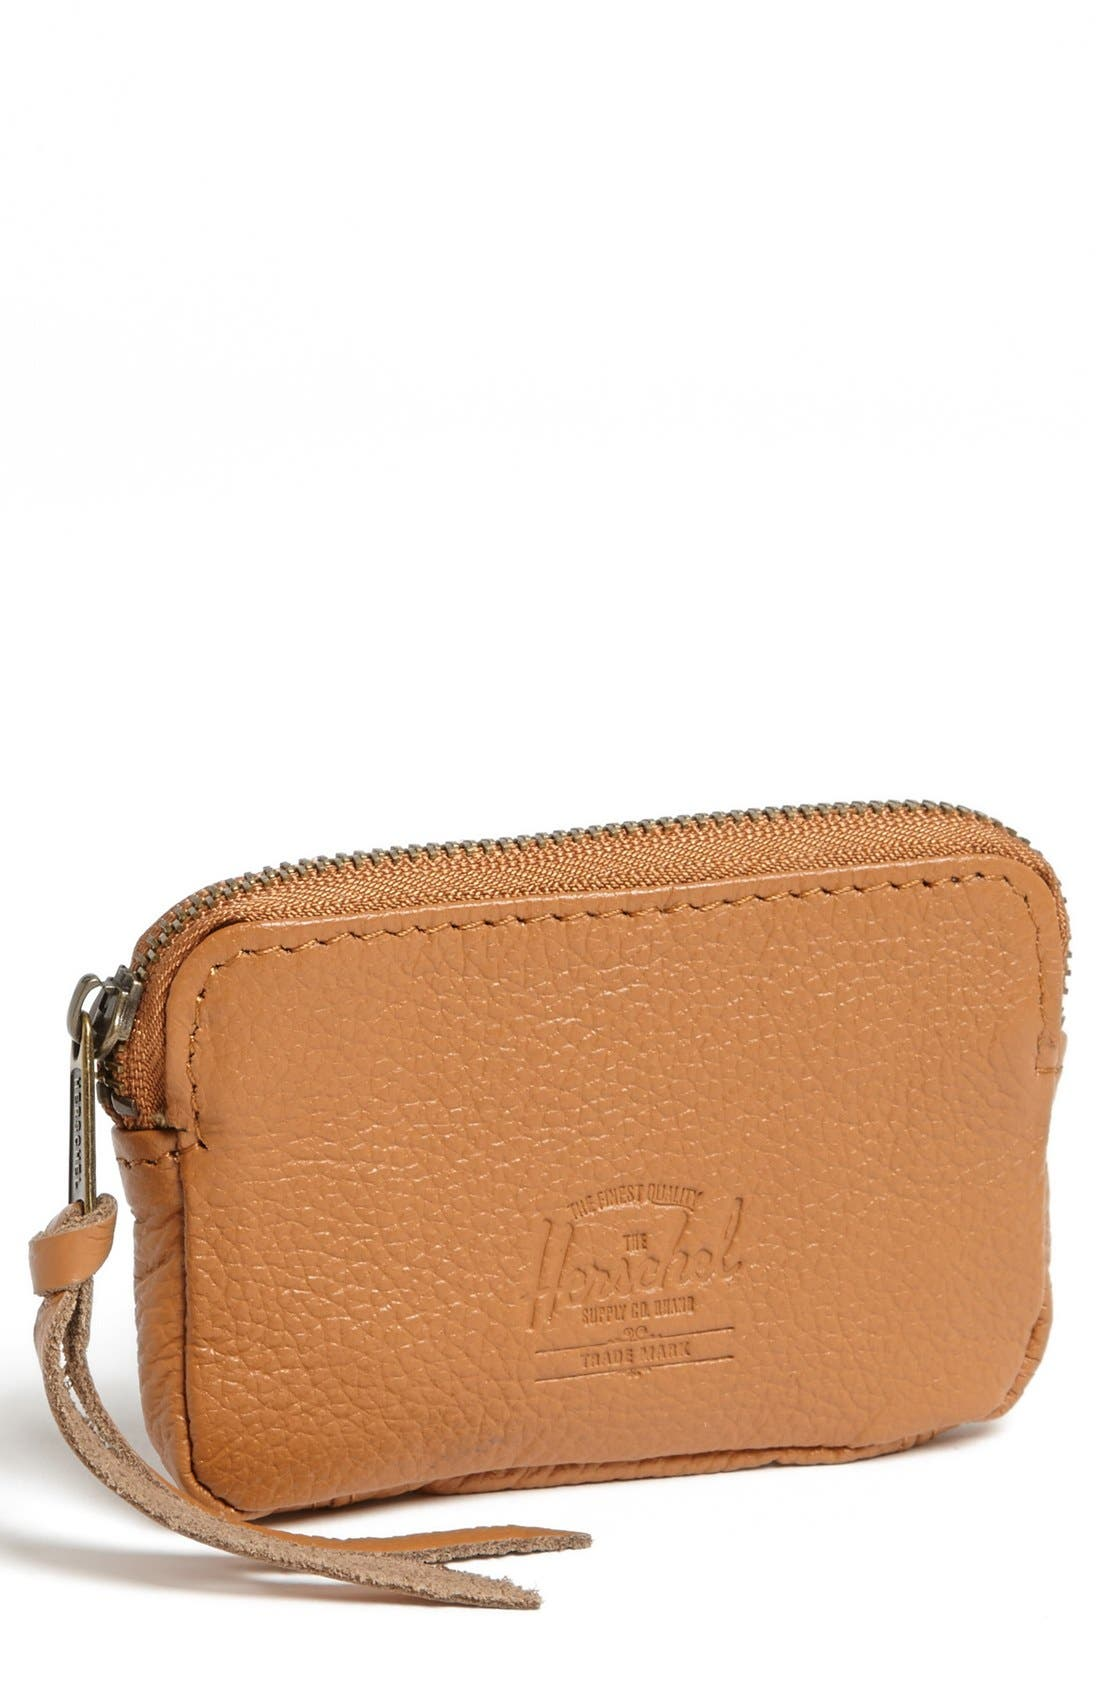 Main Image - Herschel Supply Co. 'Oxford' Leather Pouch Wallet